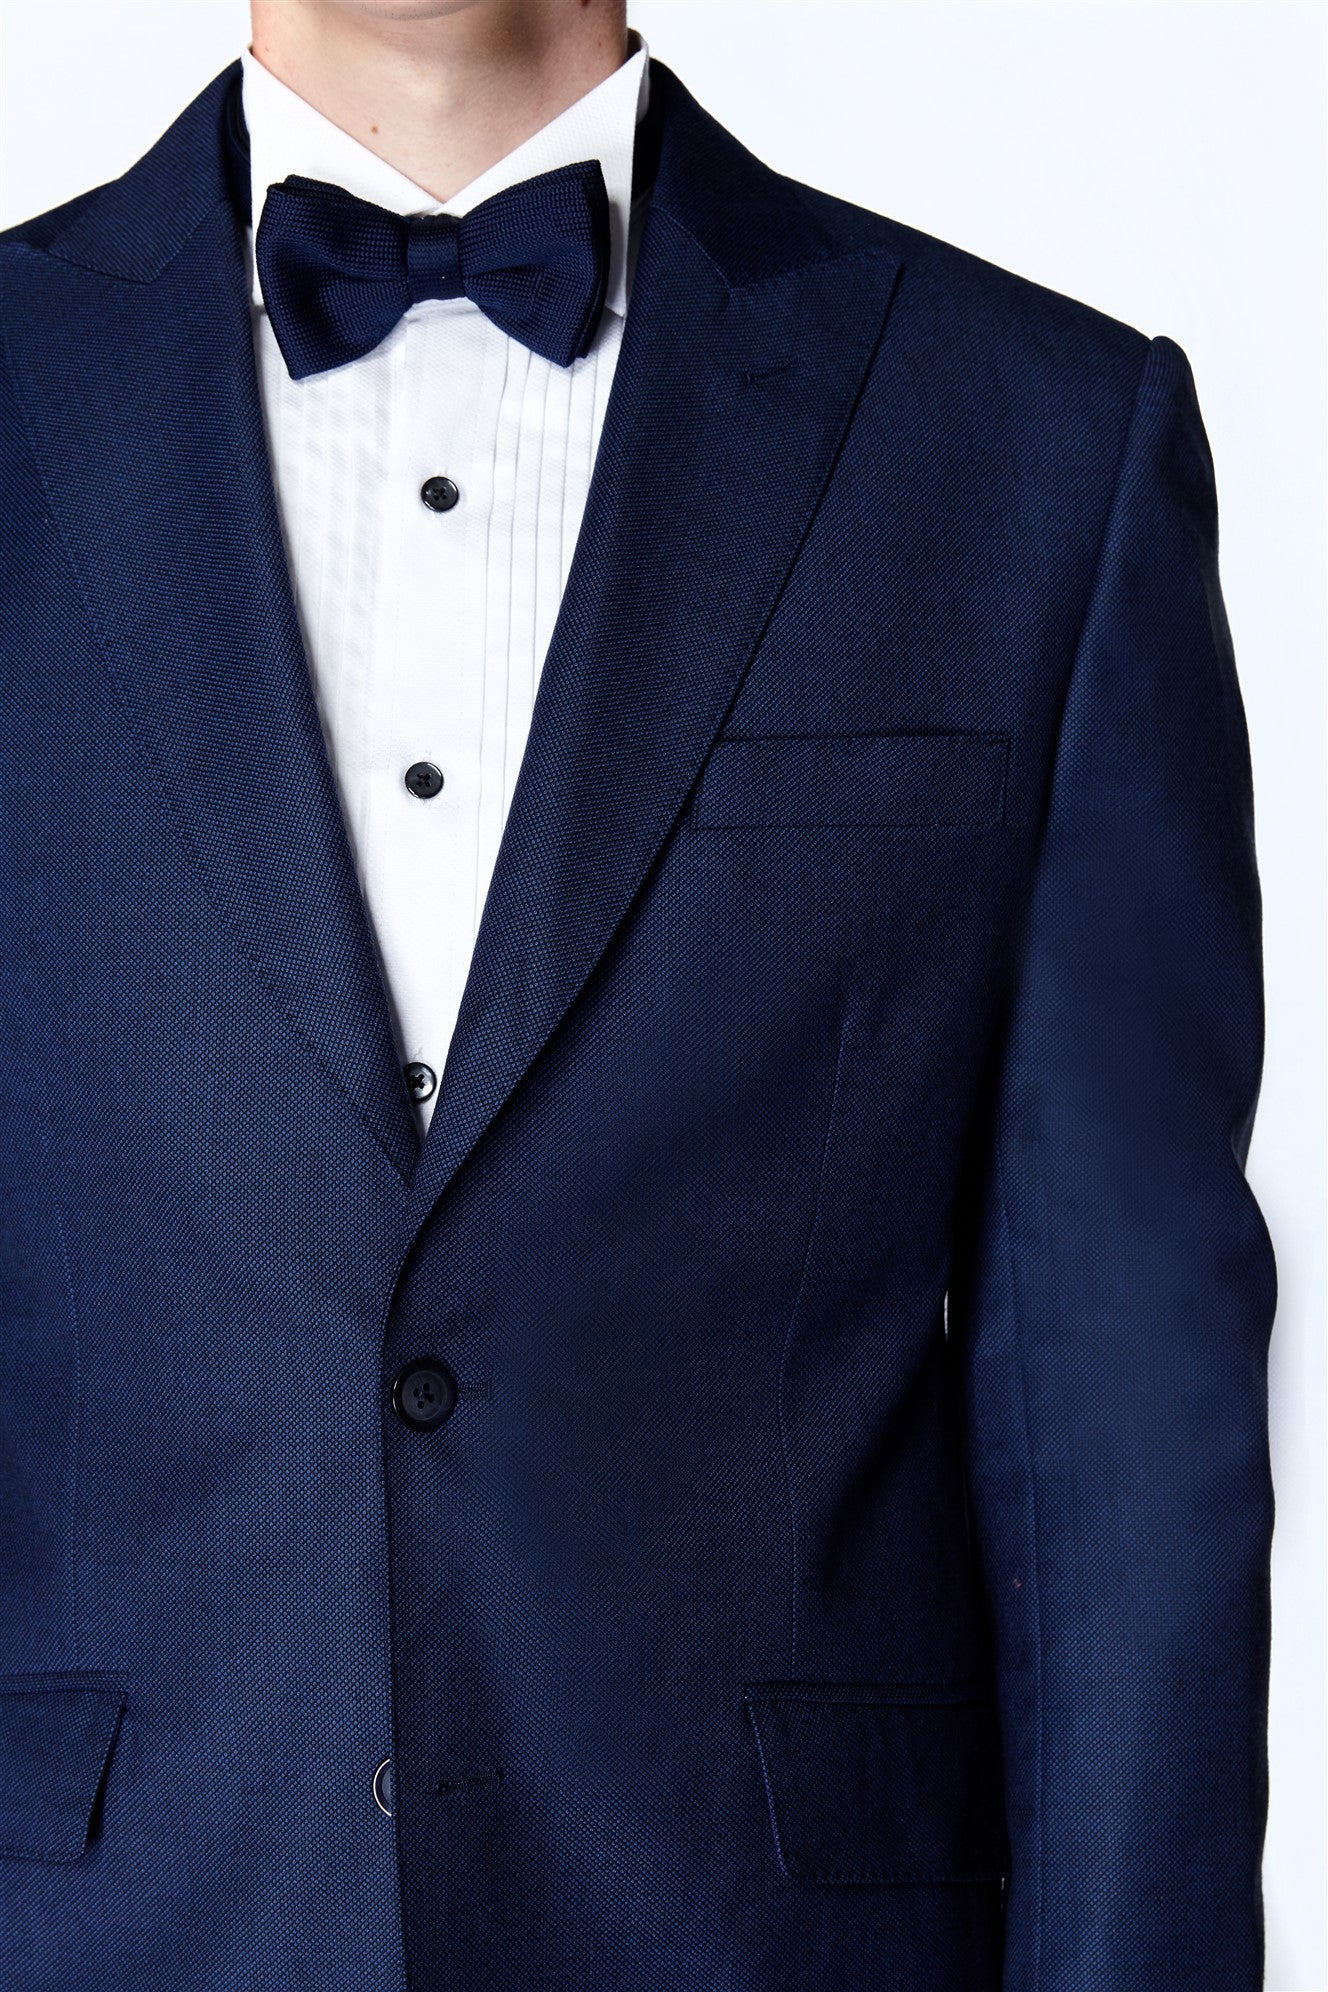 Blue Hopsack Suit (Italian Wool)